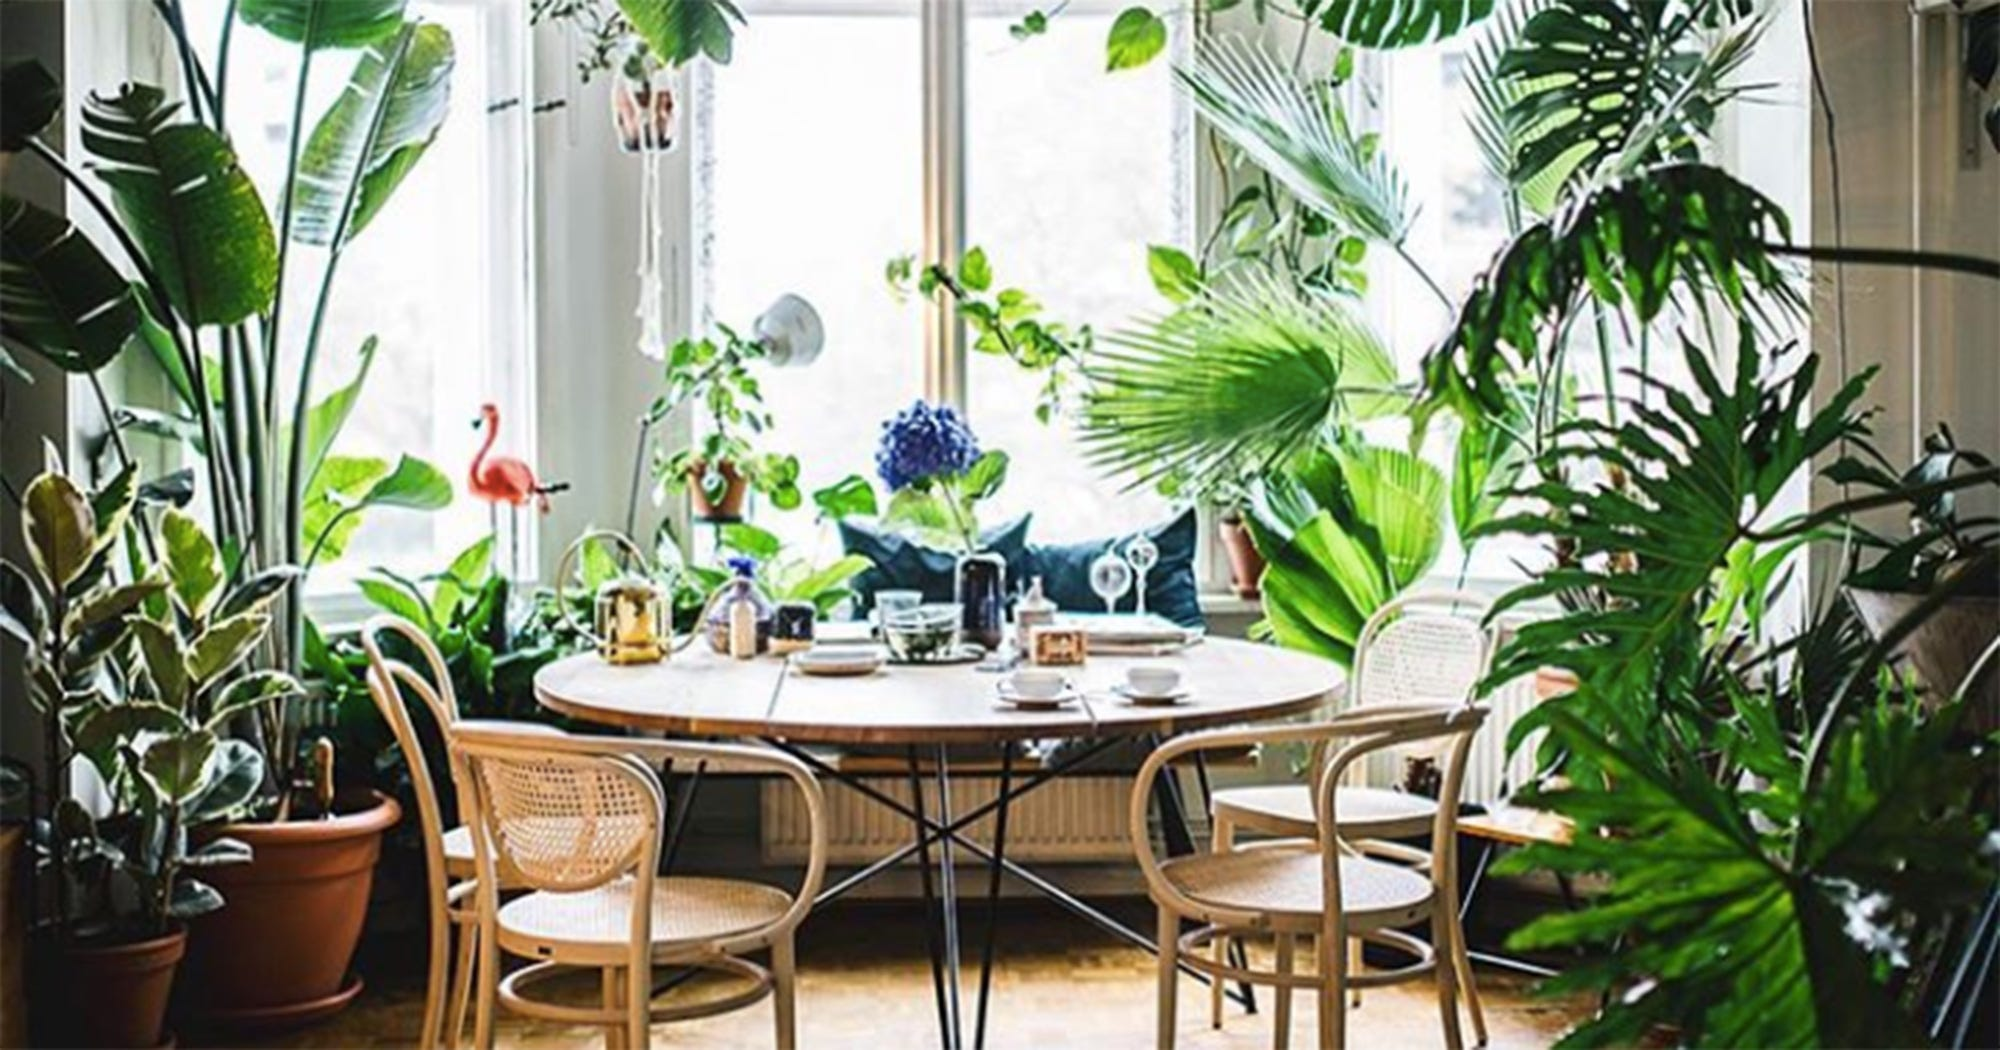 How To Take Insta-Worthy Shots Of Your House Plants